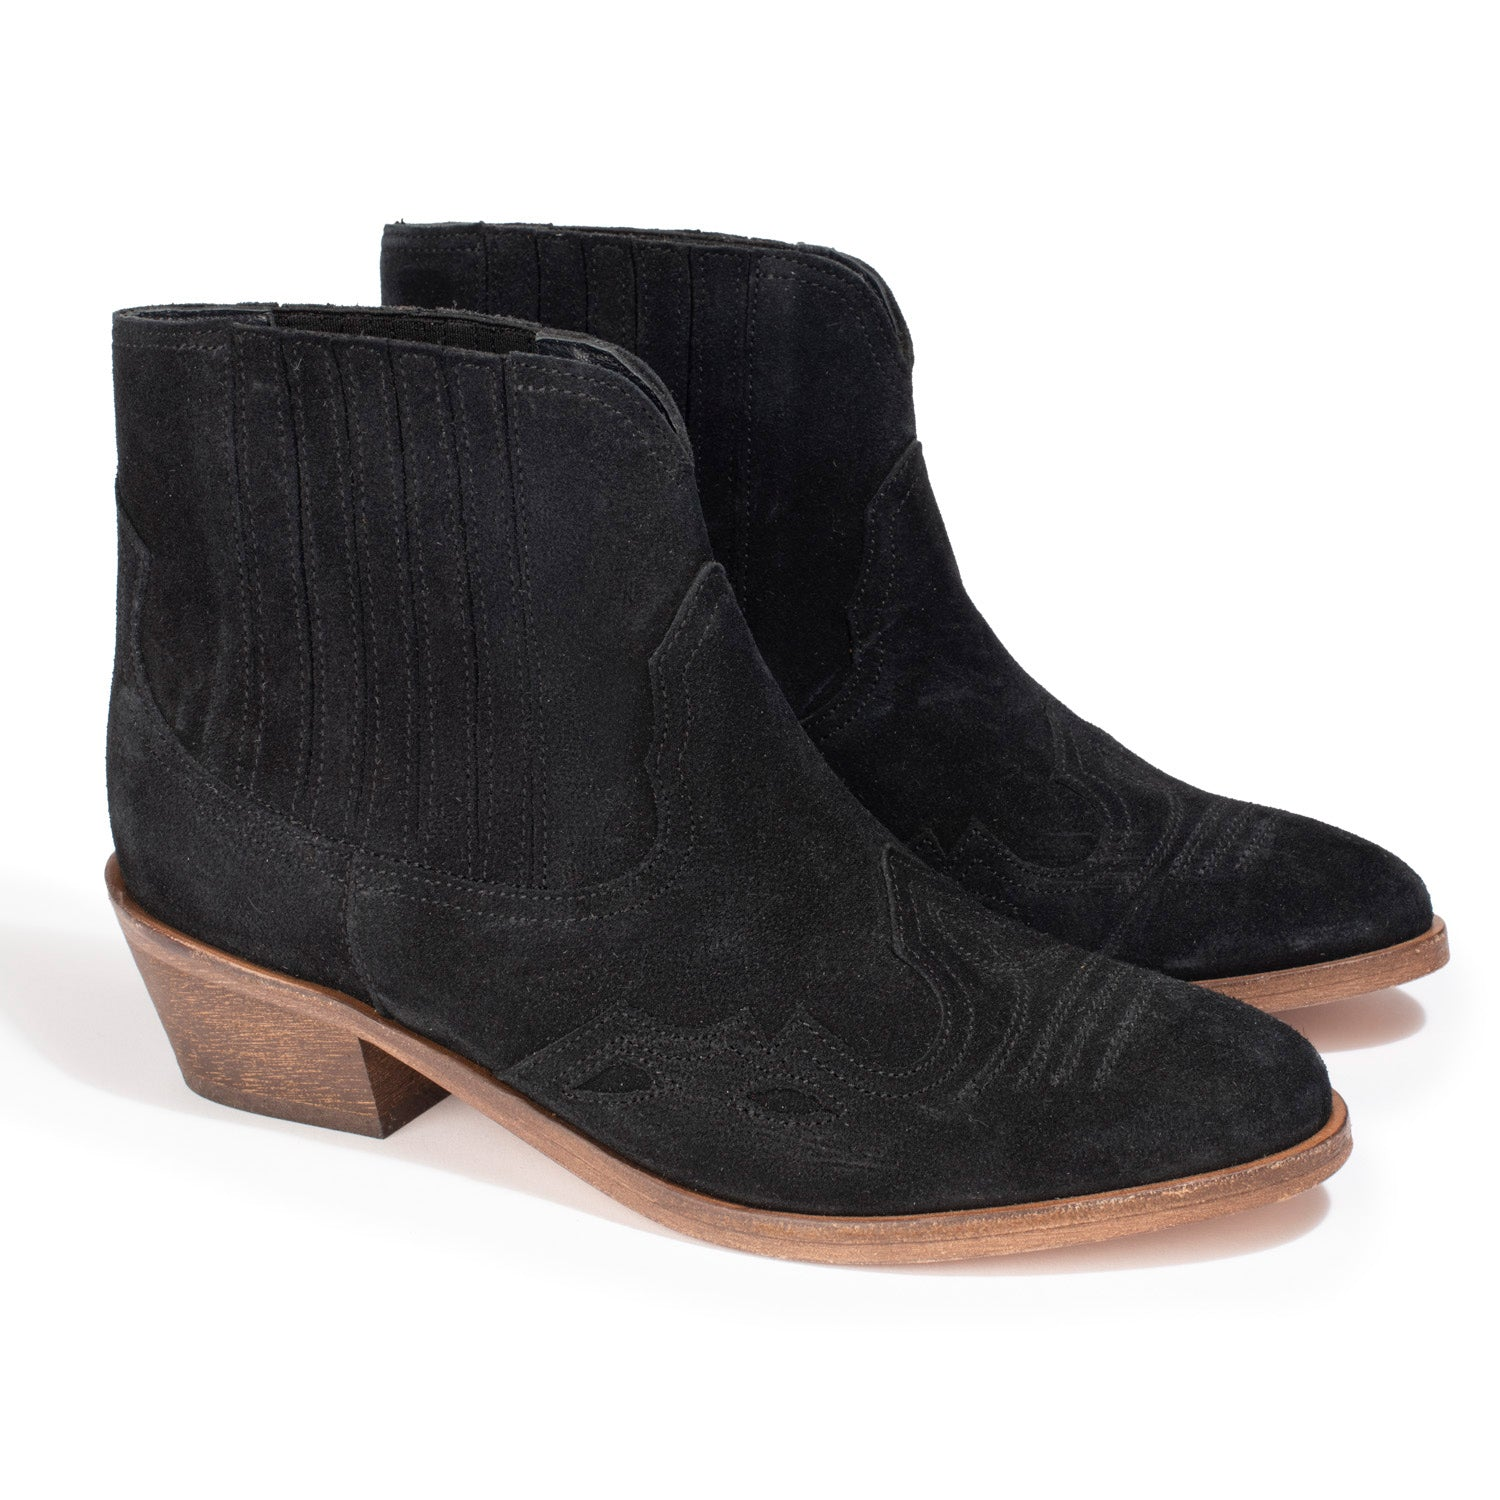 Bottines Carrie Noir - Anaki Paris